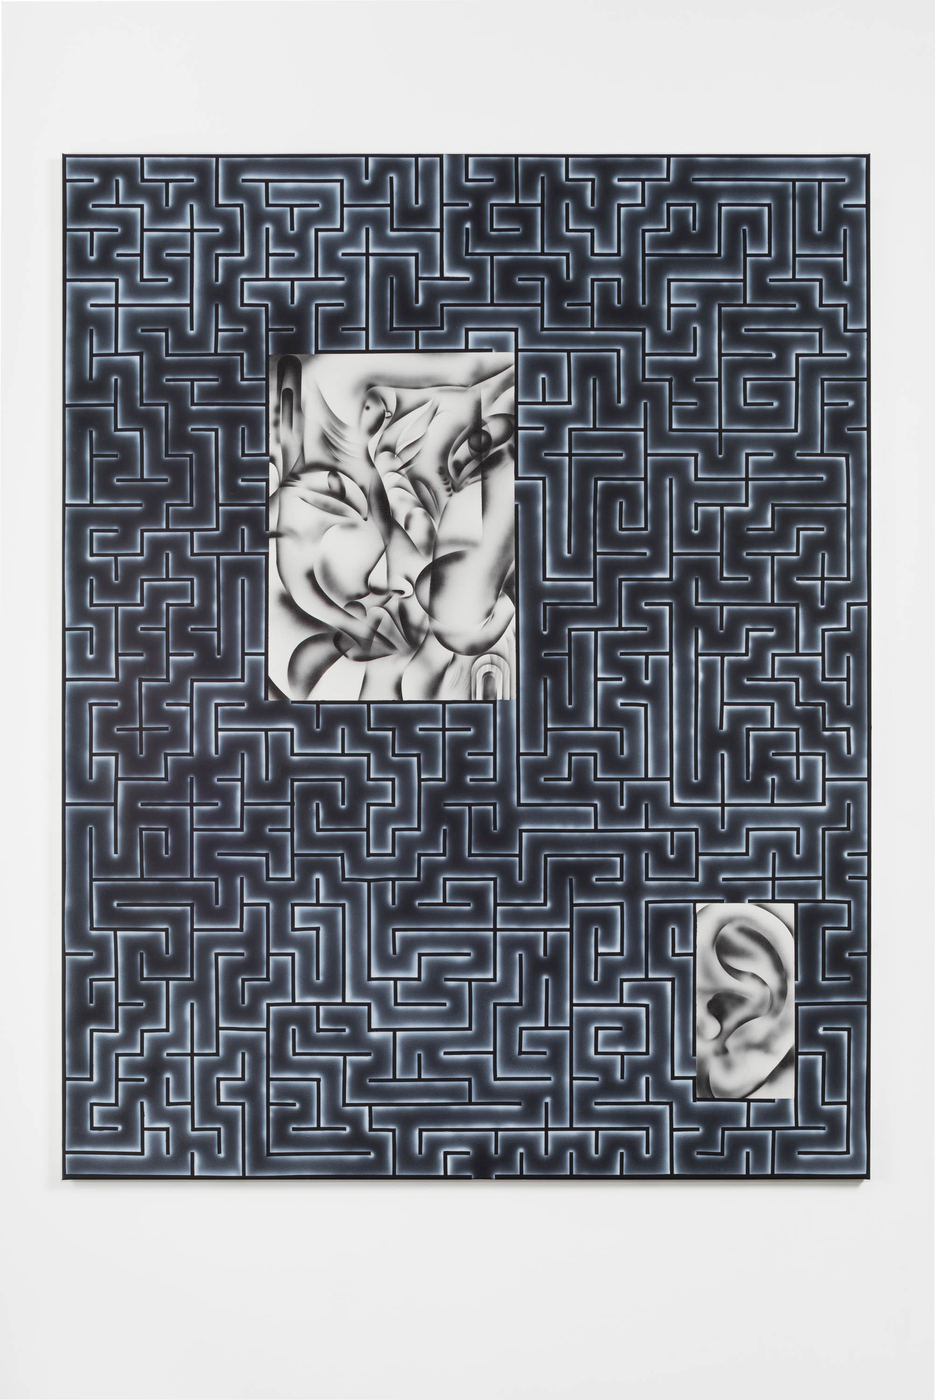 Zoe Barcza, Erotic Maze Painting (Face, Ear, and Little Bird), 2016, Acrylic on canvas, 65 x 51 in, 165 x 130 cm